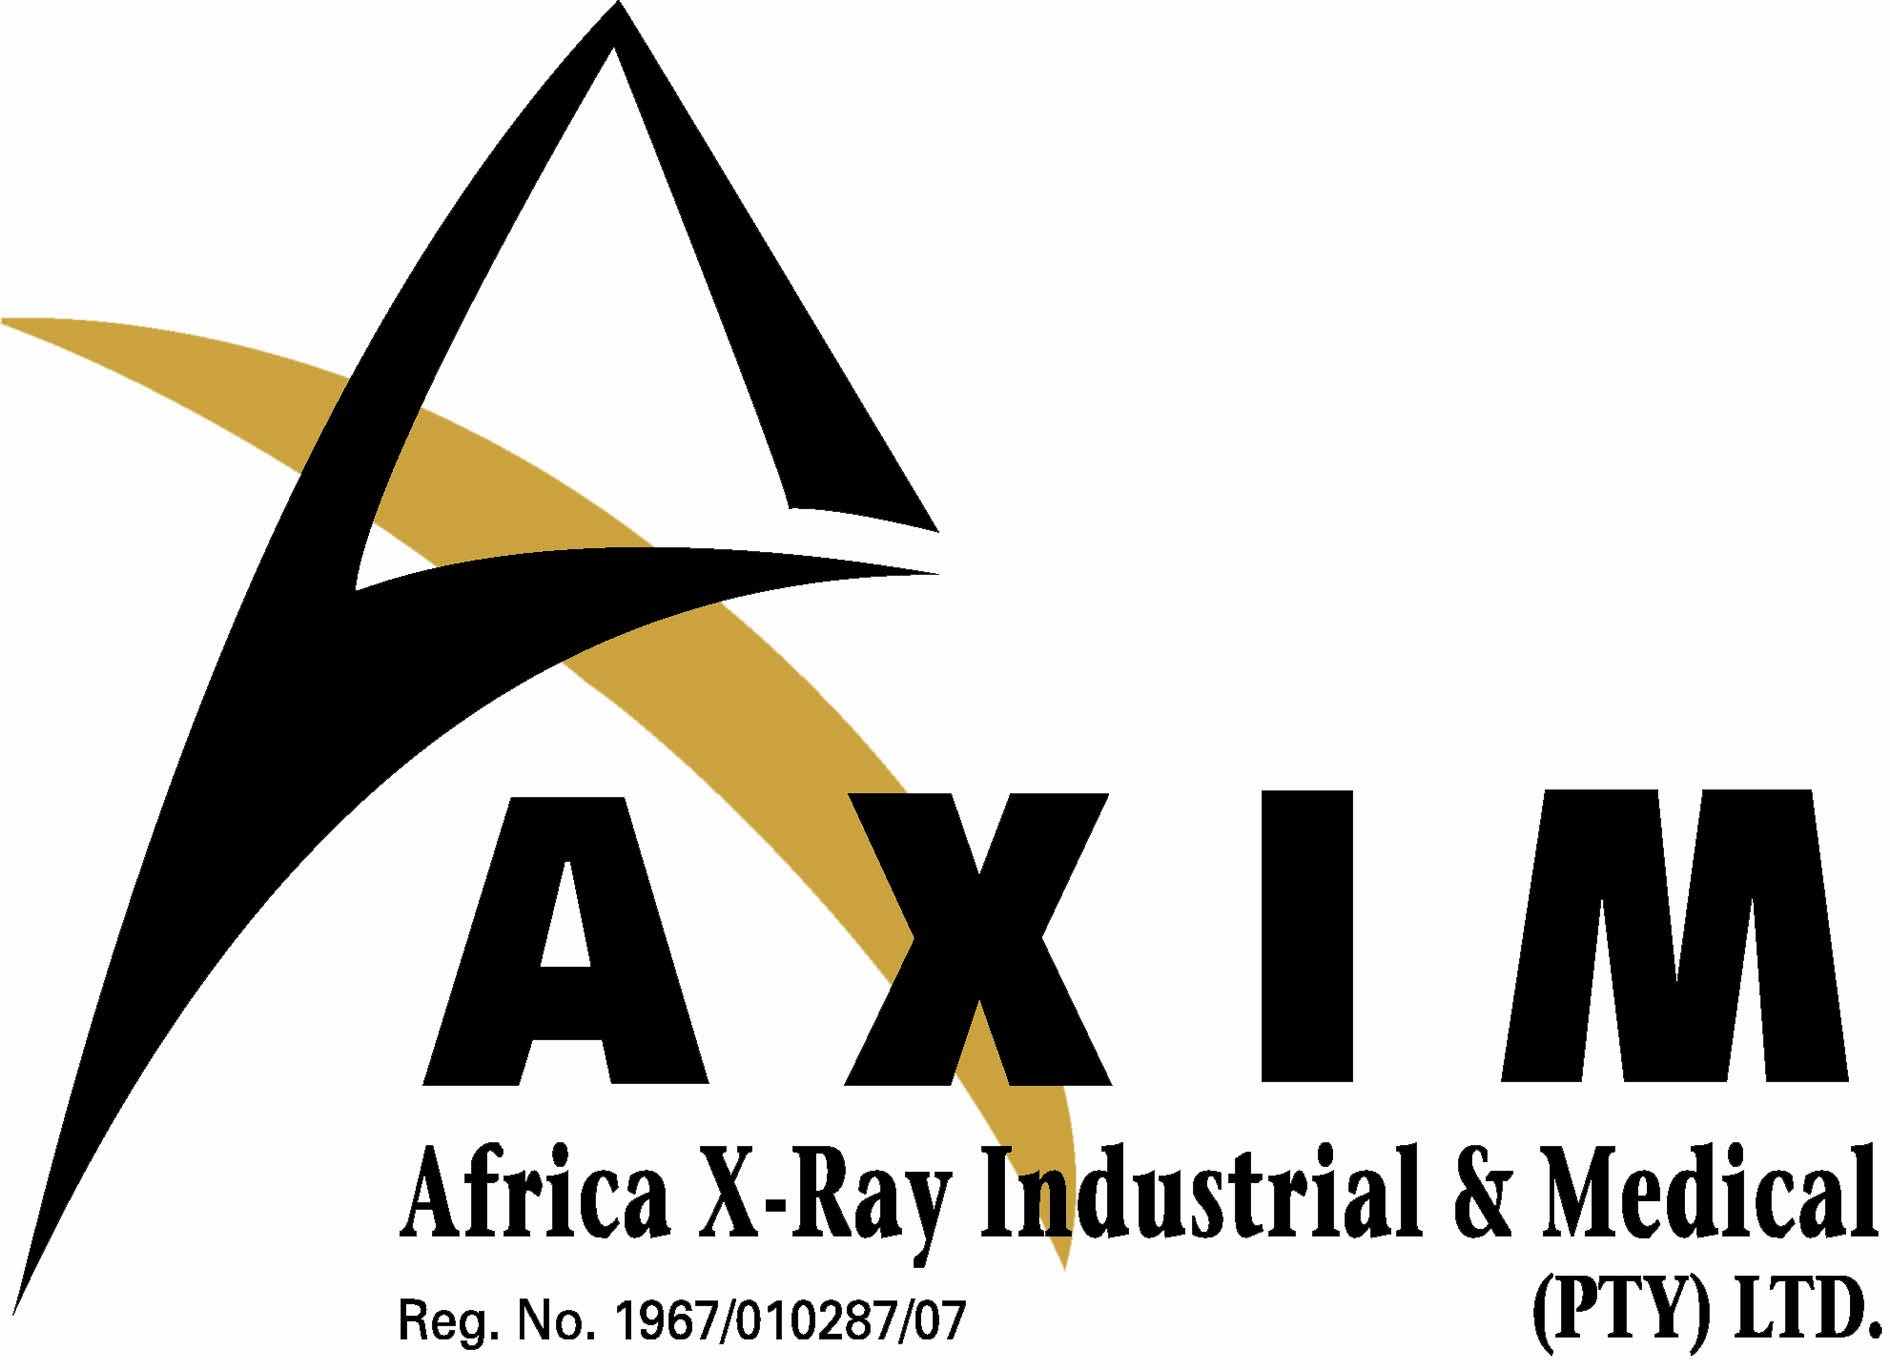 Africa X-Ray Industrial & Medical (PTY) Ltd.